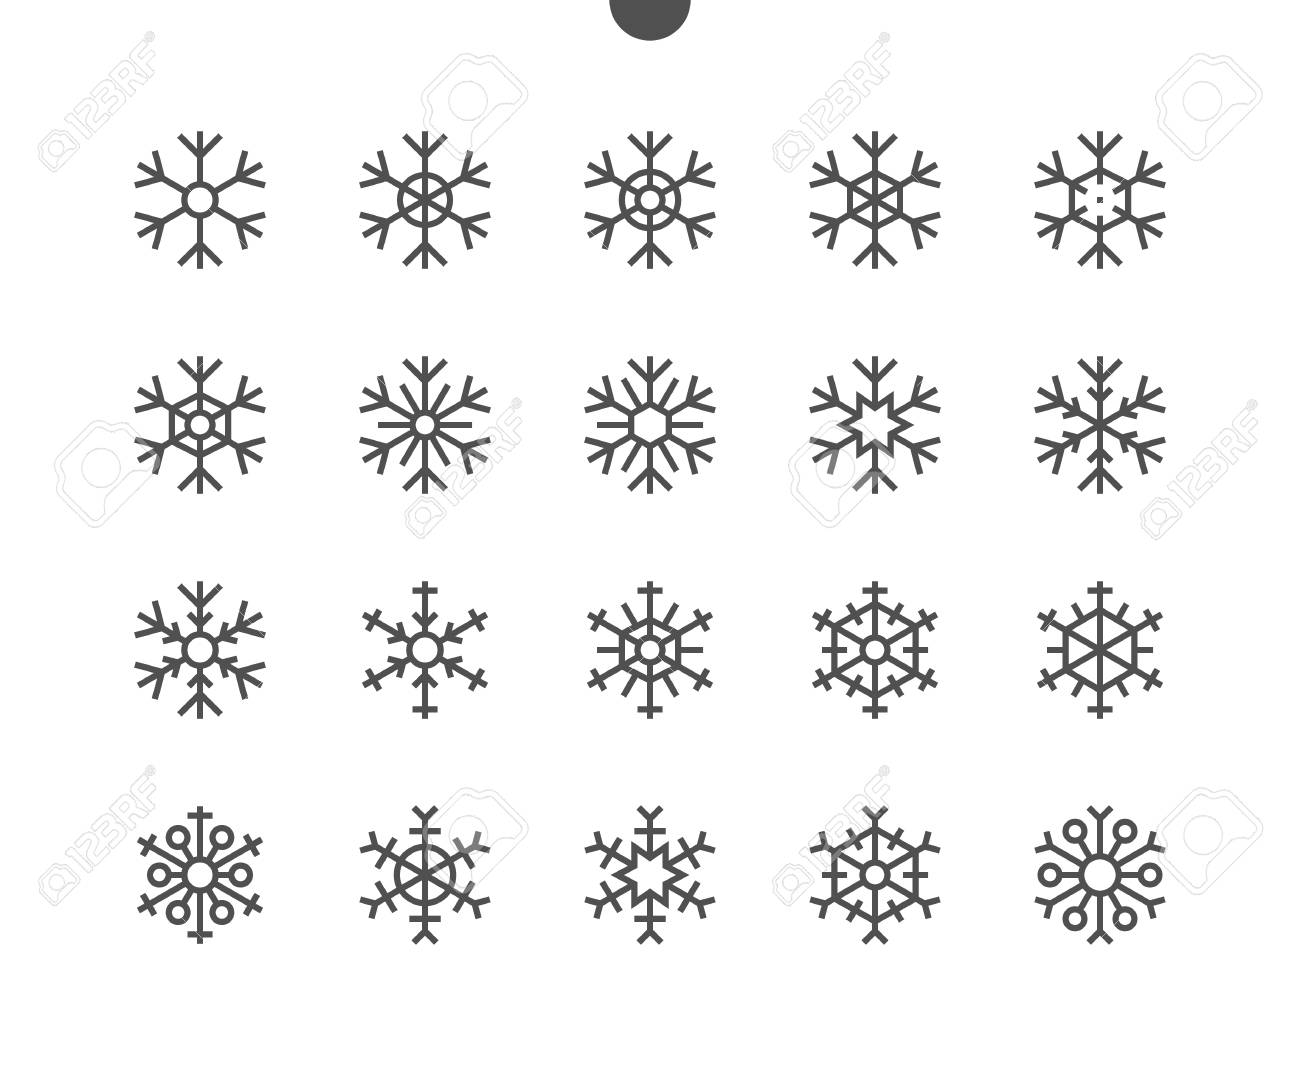 Snowflakes UI Pixel Perfect Well-crafted Vector Thin Line Icons 48x48 Ready for 24x24 Grid for Web Graphics and Apps with Editable Stroke. Simple Minimal Pictogram - 91115668